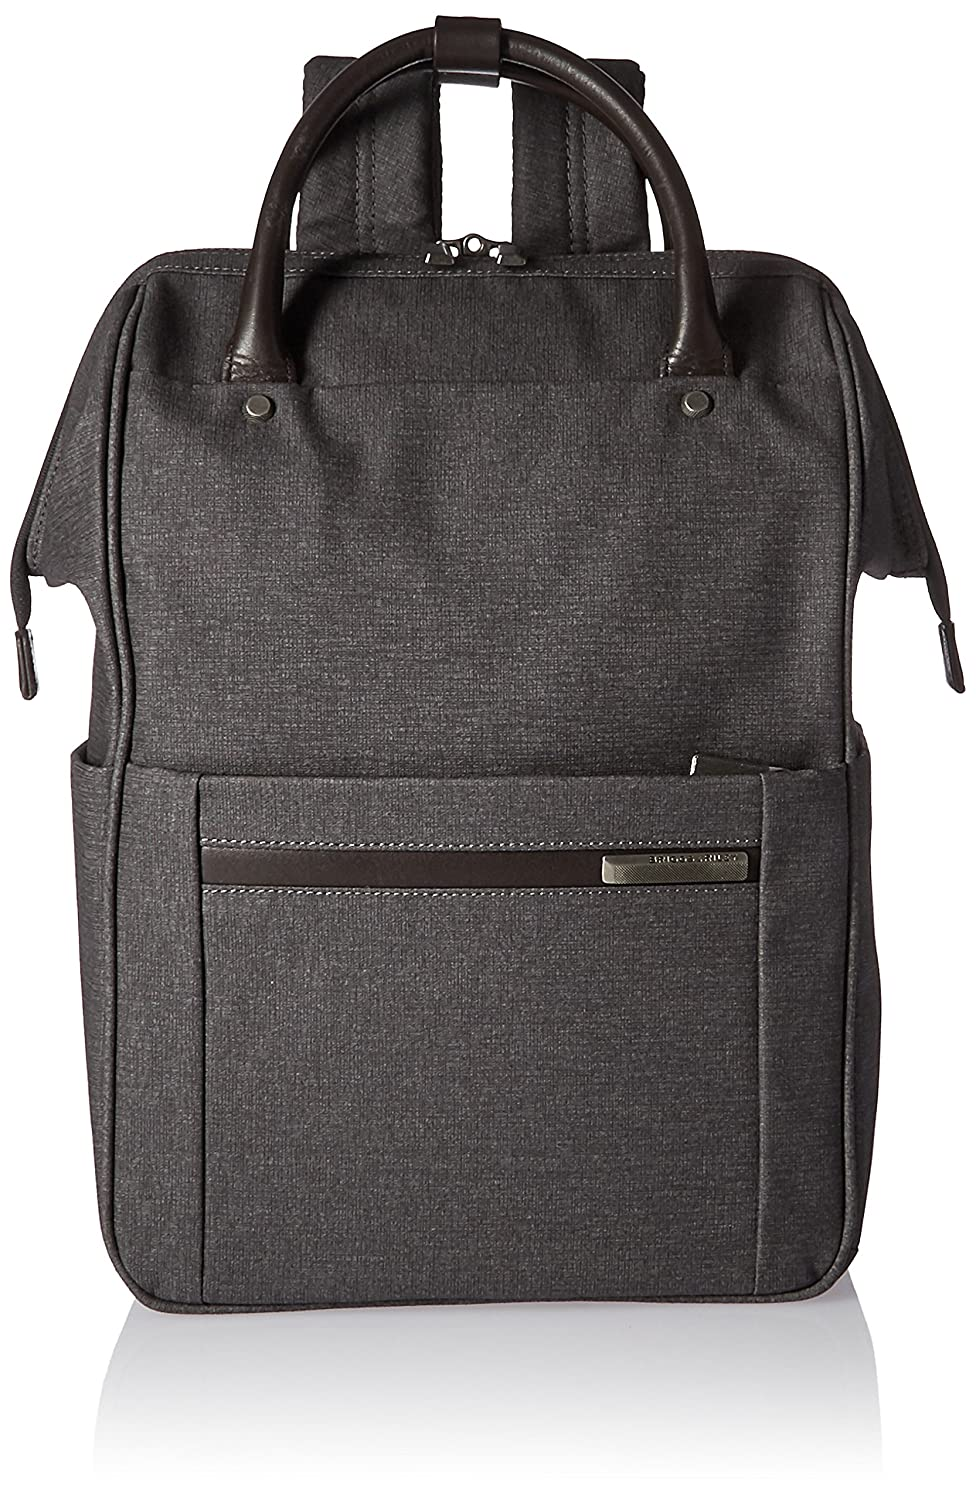 592e95065 Amazon.com | Briggs & Riley Kinzie Street, Framed Wide-Mouth Backpack, Grey  | Casual Daypacks